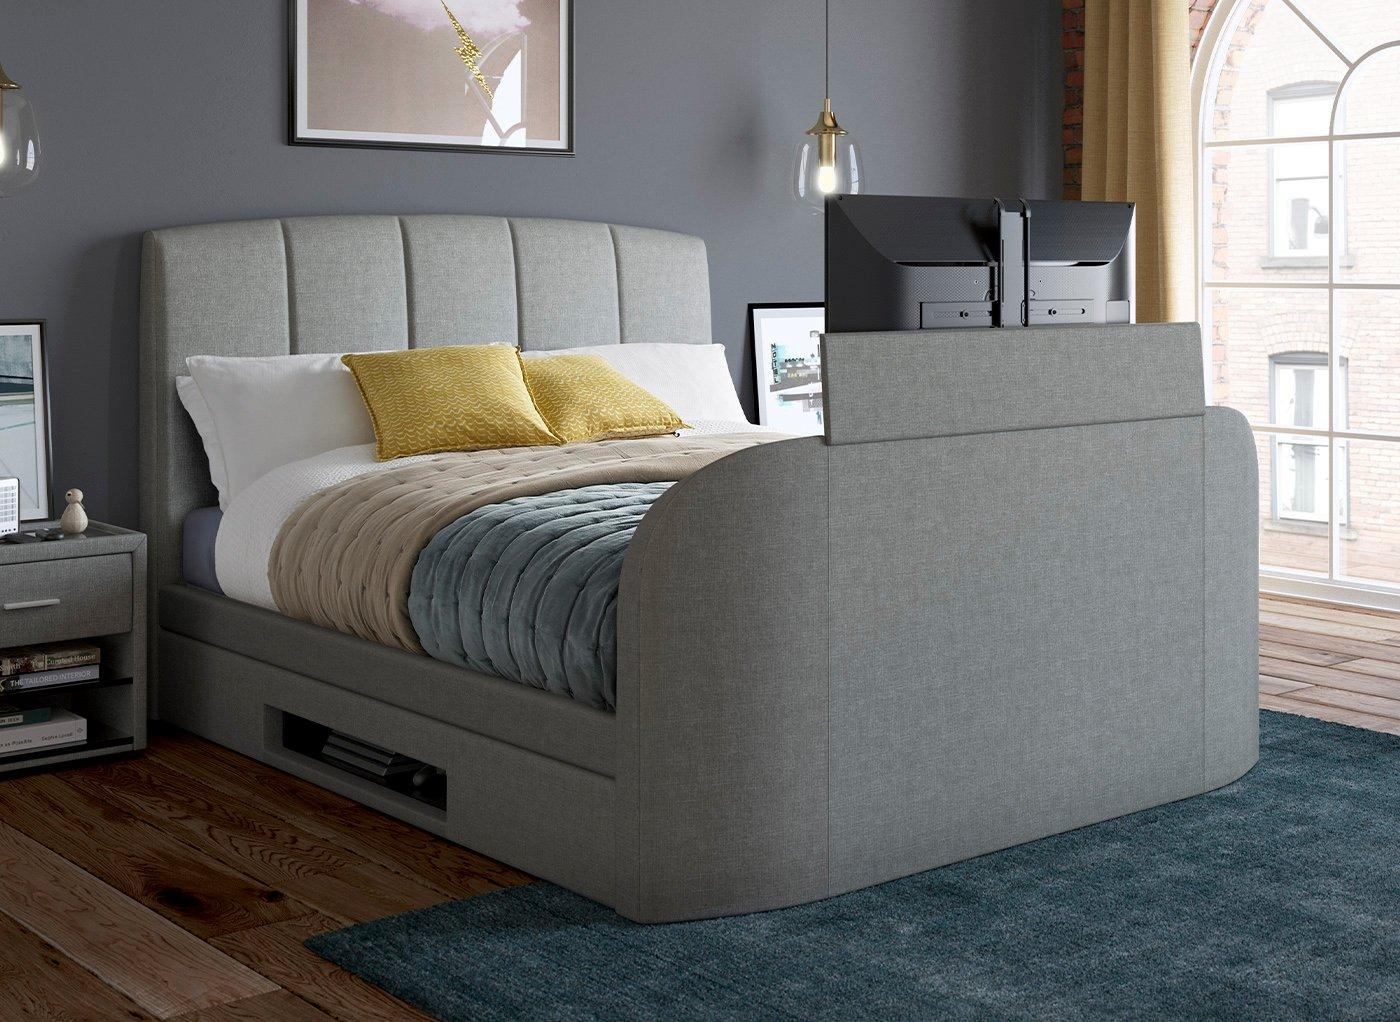 seoul-upholstered-bed-frame-with-32--led-tv